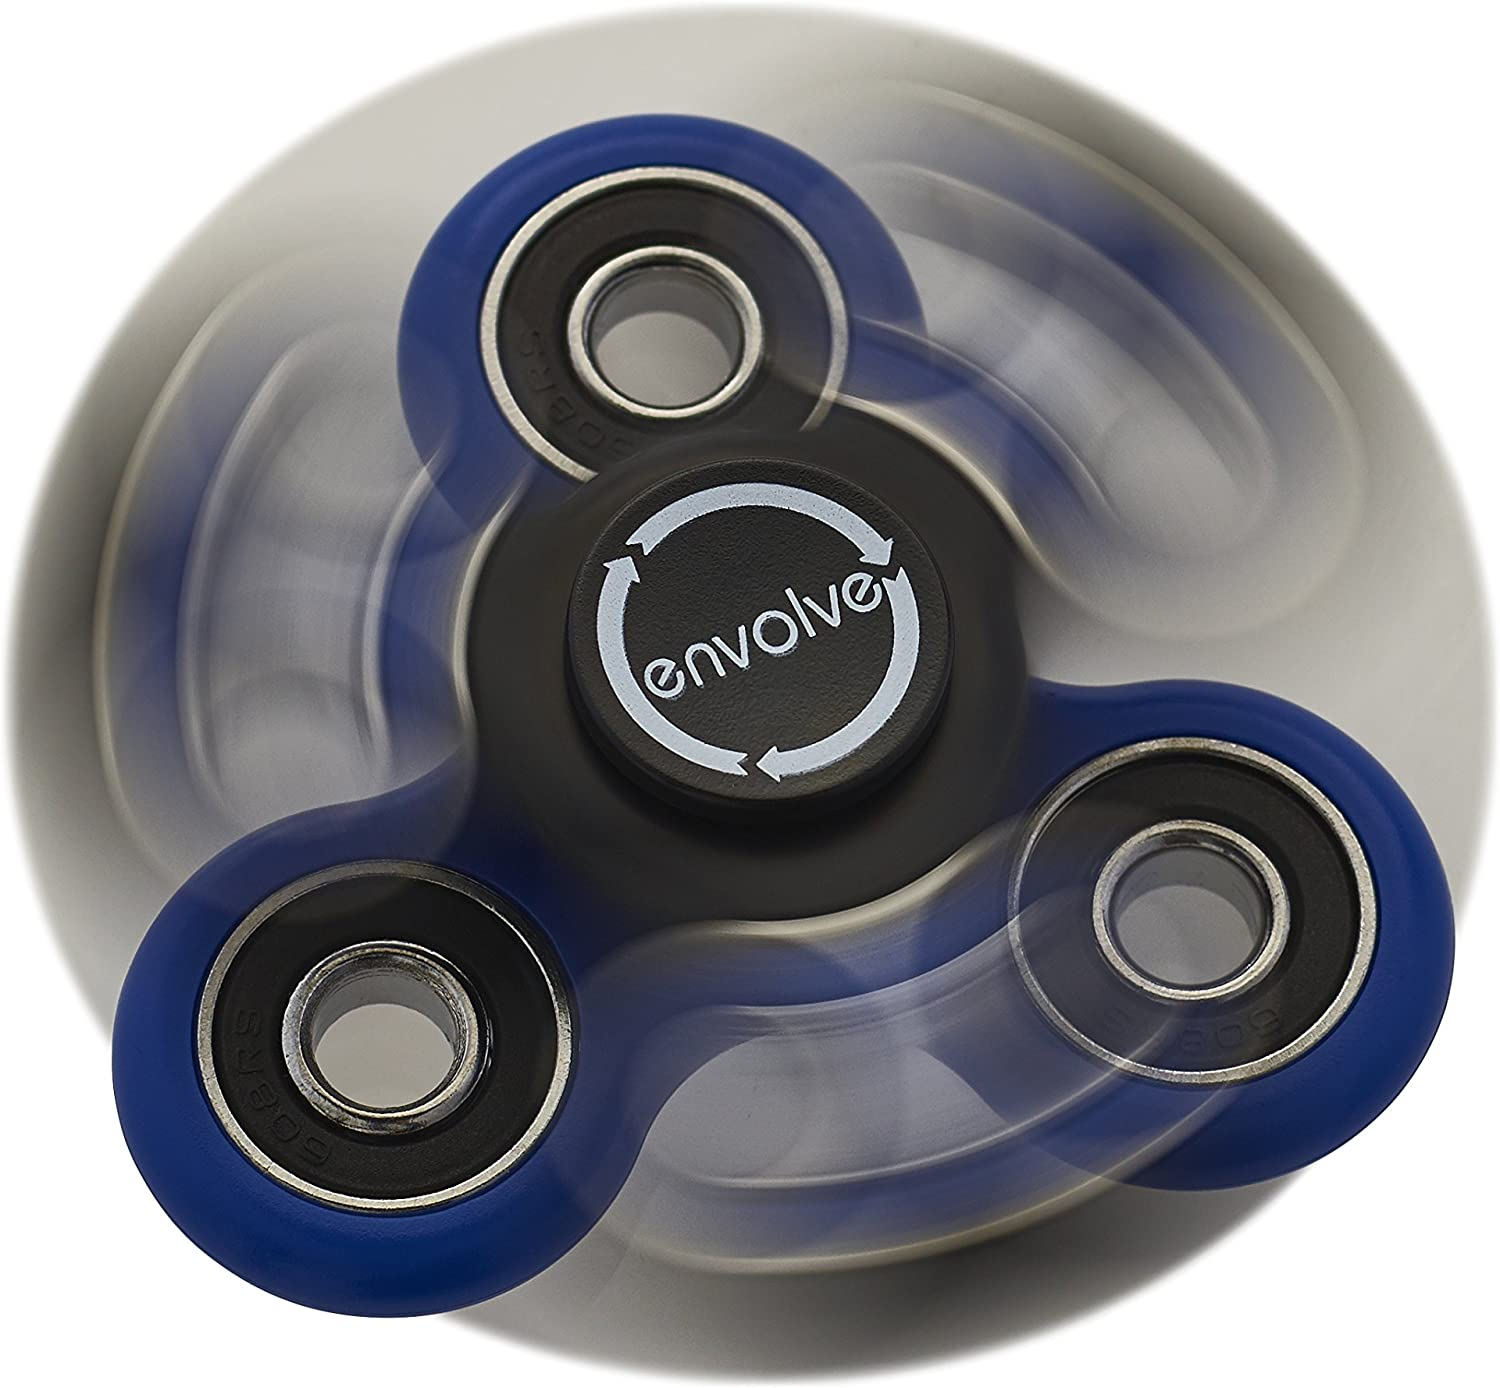 Envolve Dual/Triple in One Stack and Spin Set - for Focus, Calm Anxiety, and Break Nervous Habits - Long Spins 3-4 Minutes (Gift Packaging)